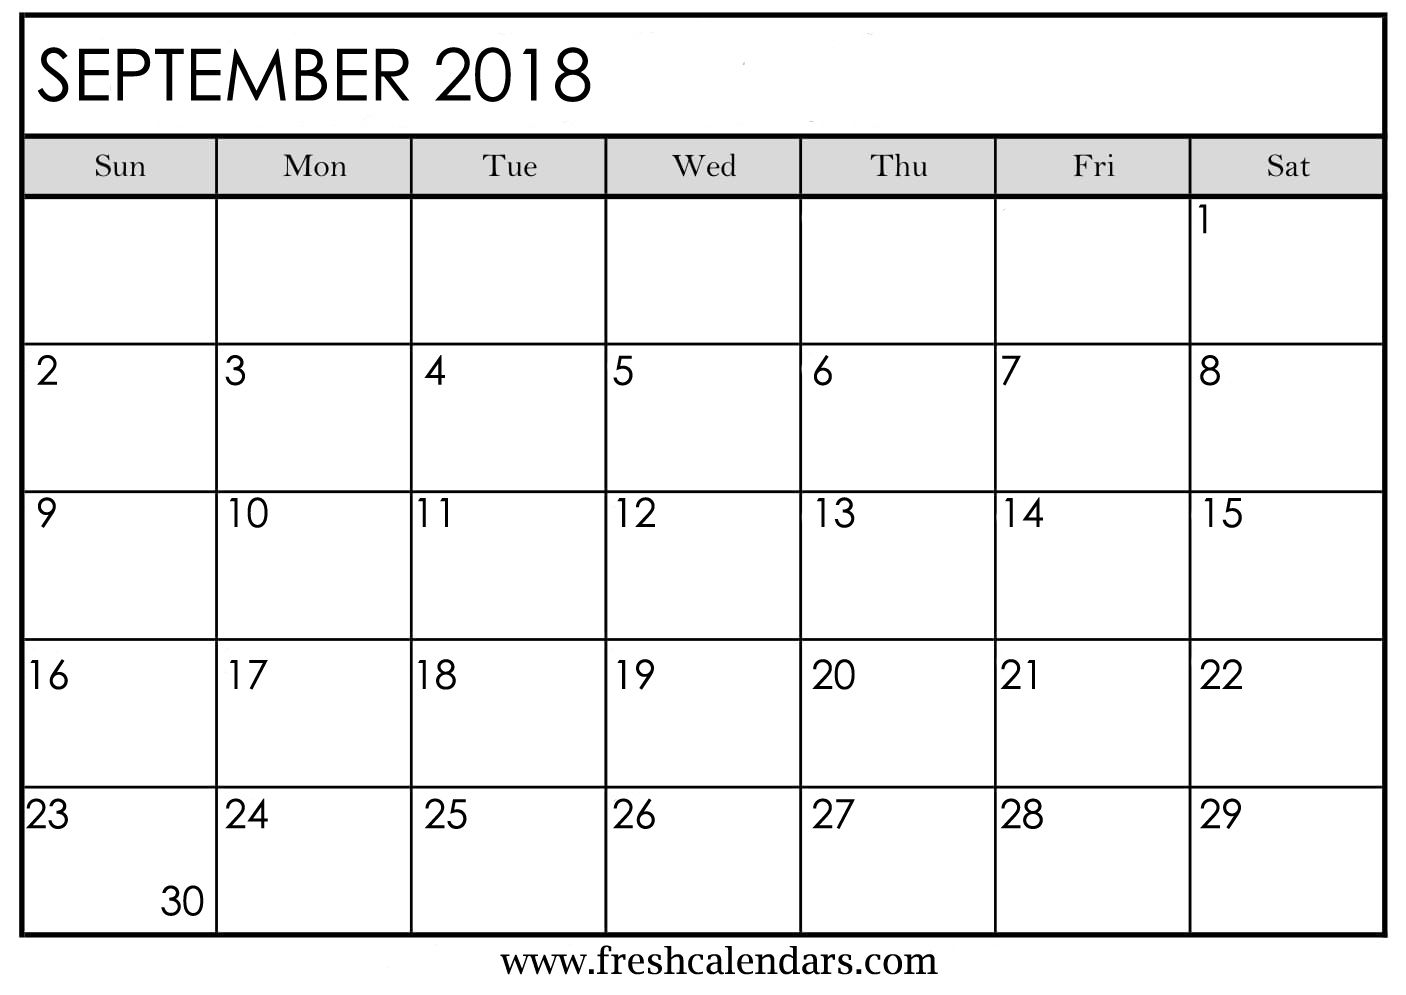 September 2018 Calendar Printable - Fresh Calendars within Blank Calendar Print-Outs Fill In Sept